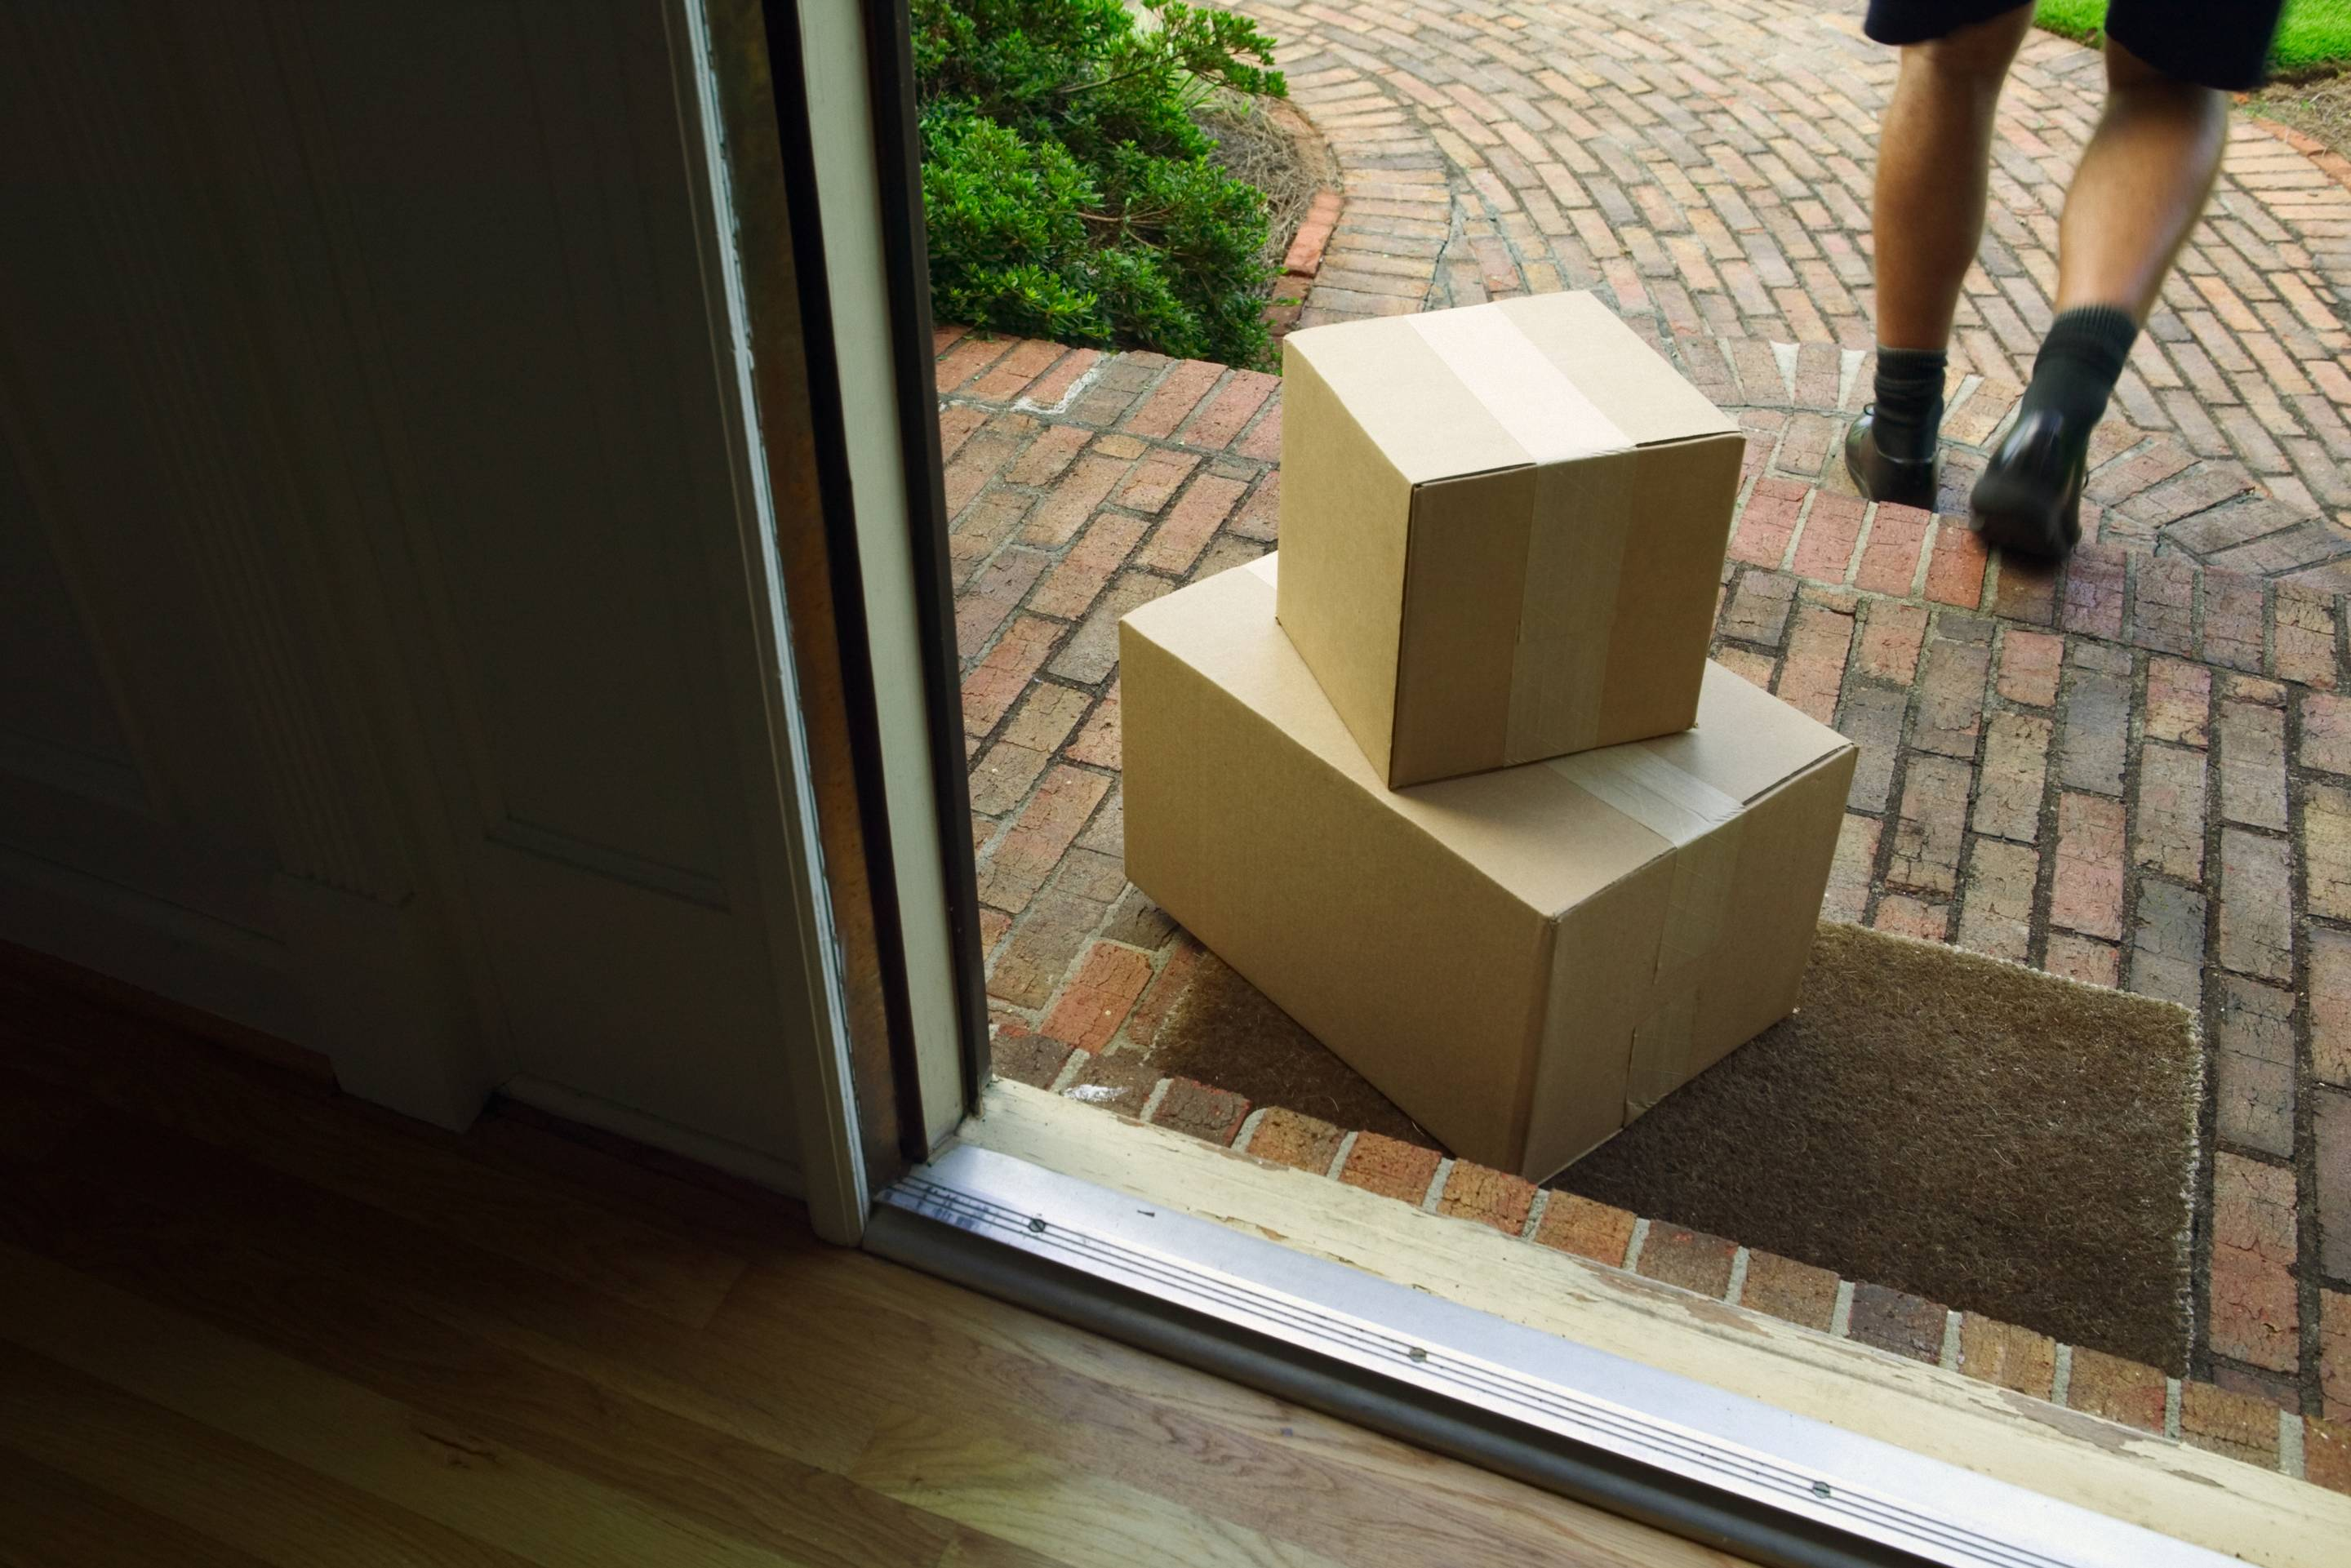 Packages on Porch